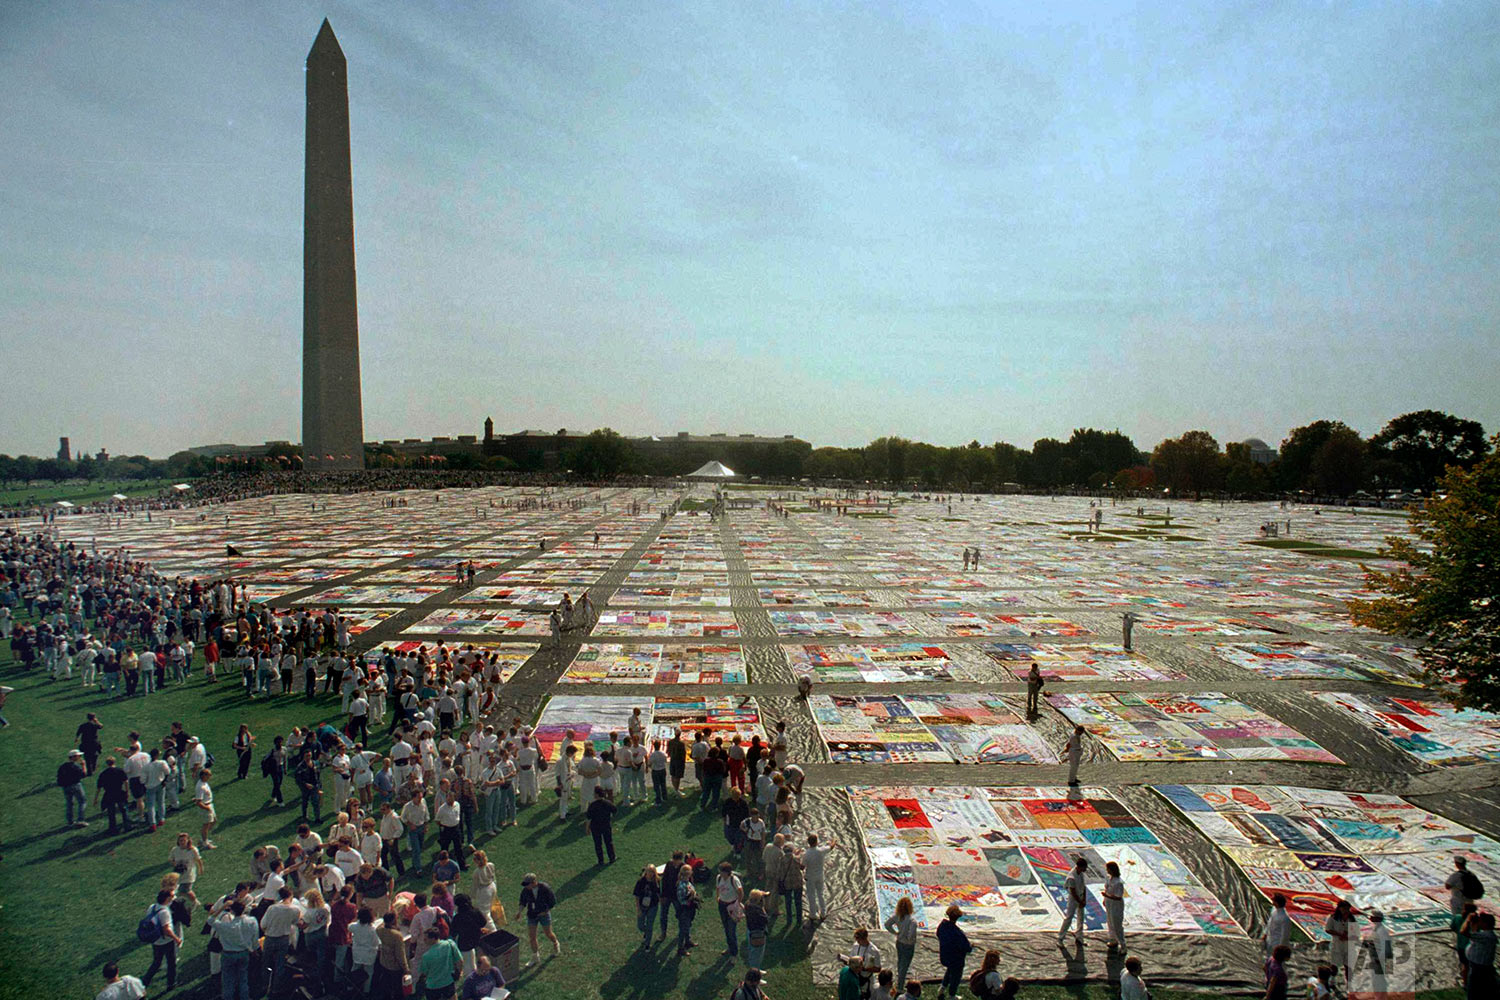 In this Saturday, Oct. 10, 1992 file photo, people visit the 21,000 panel Names Project AIDS Memorial Quilt in Washington. The Washington Monument is seen in the background. (AP Photo/Shayna Brennan)